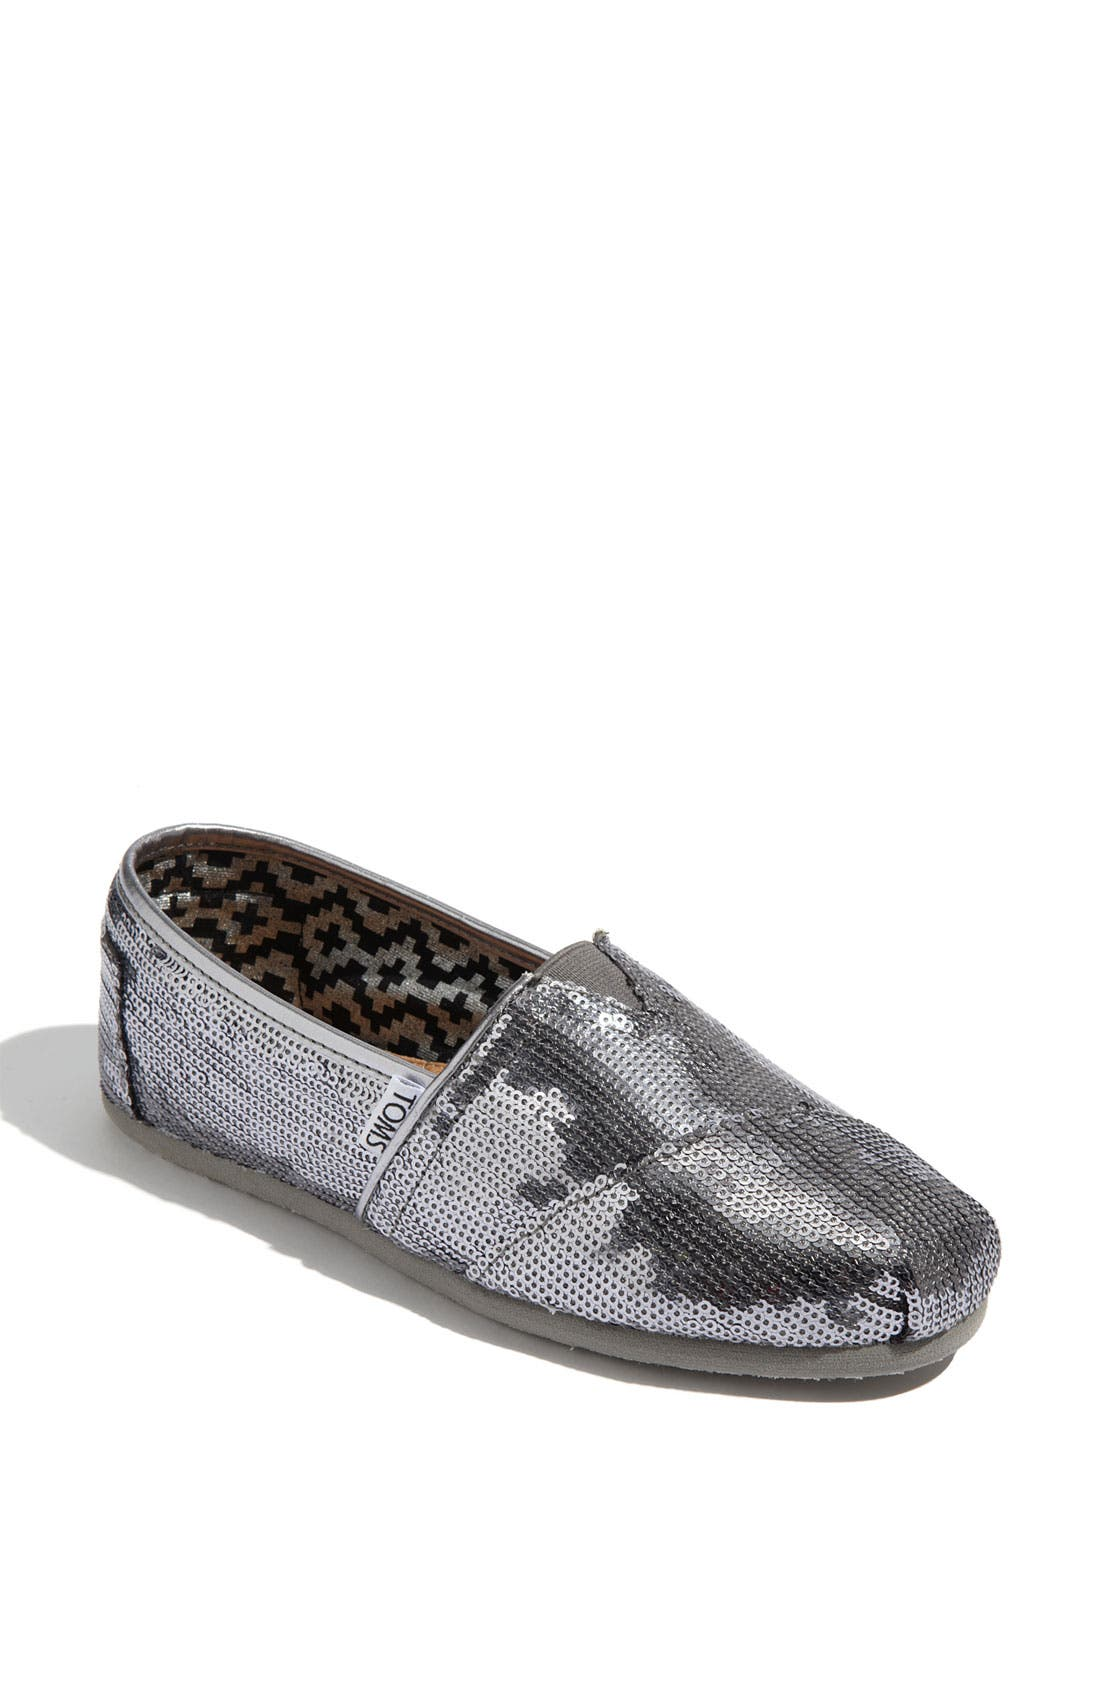 Main Image - TOMS 'Classic - Sequins' Slip-On (Women)